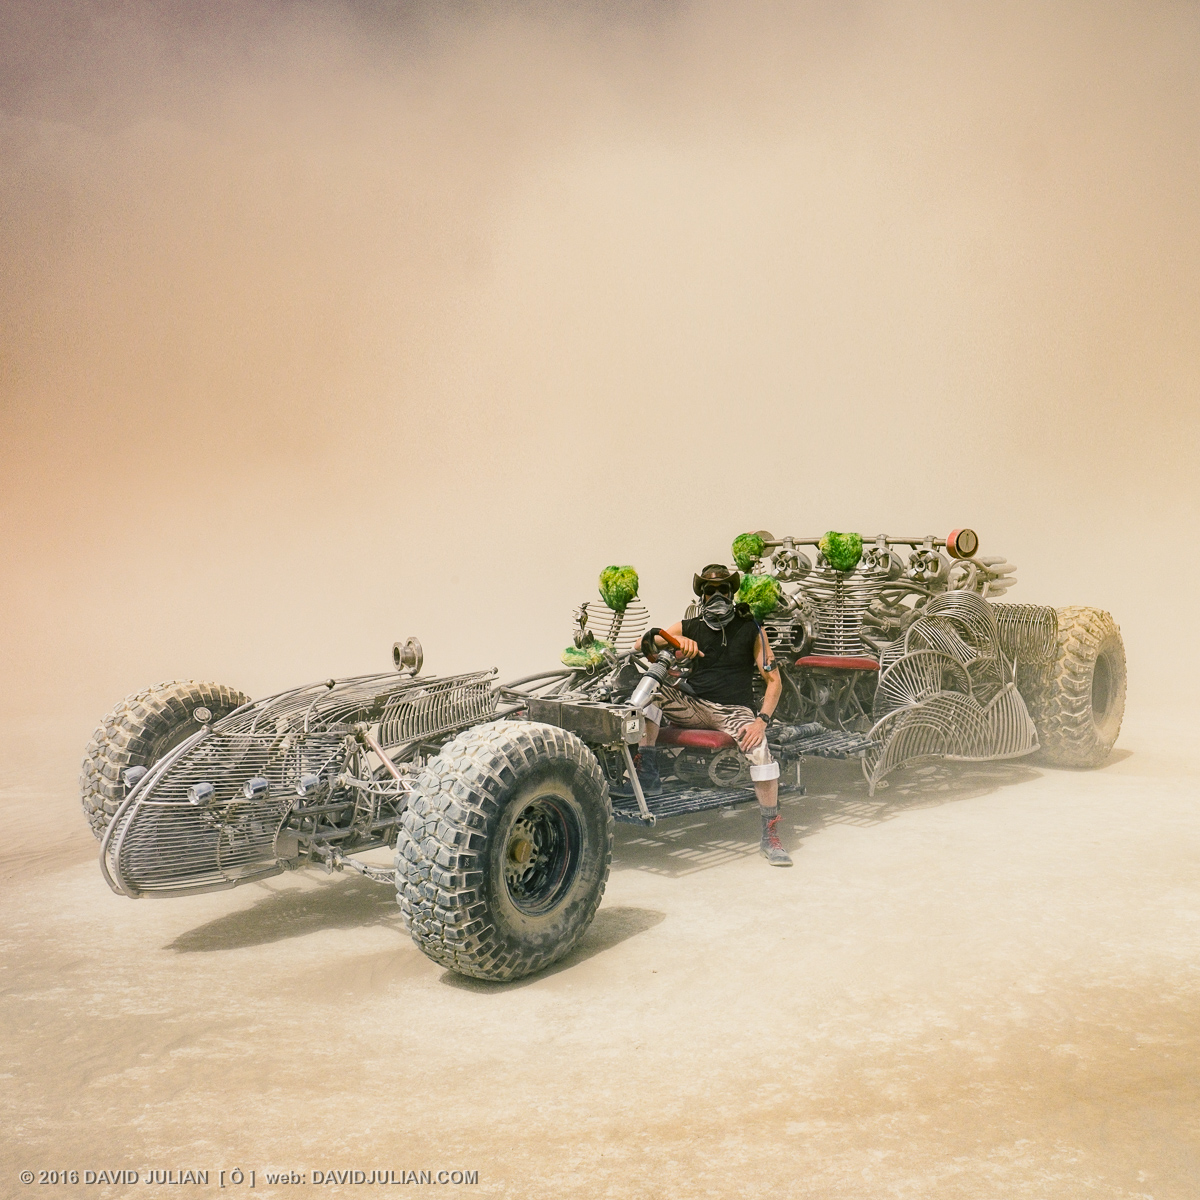 Henry Chang's Dragster, Burning Man